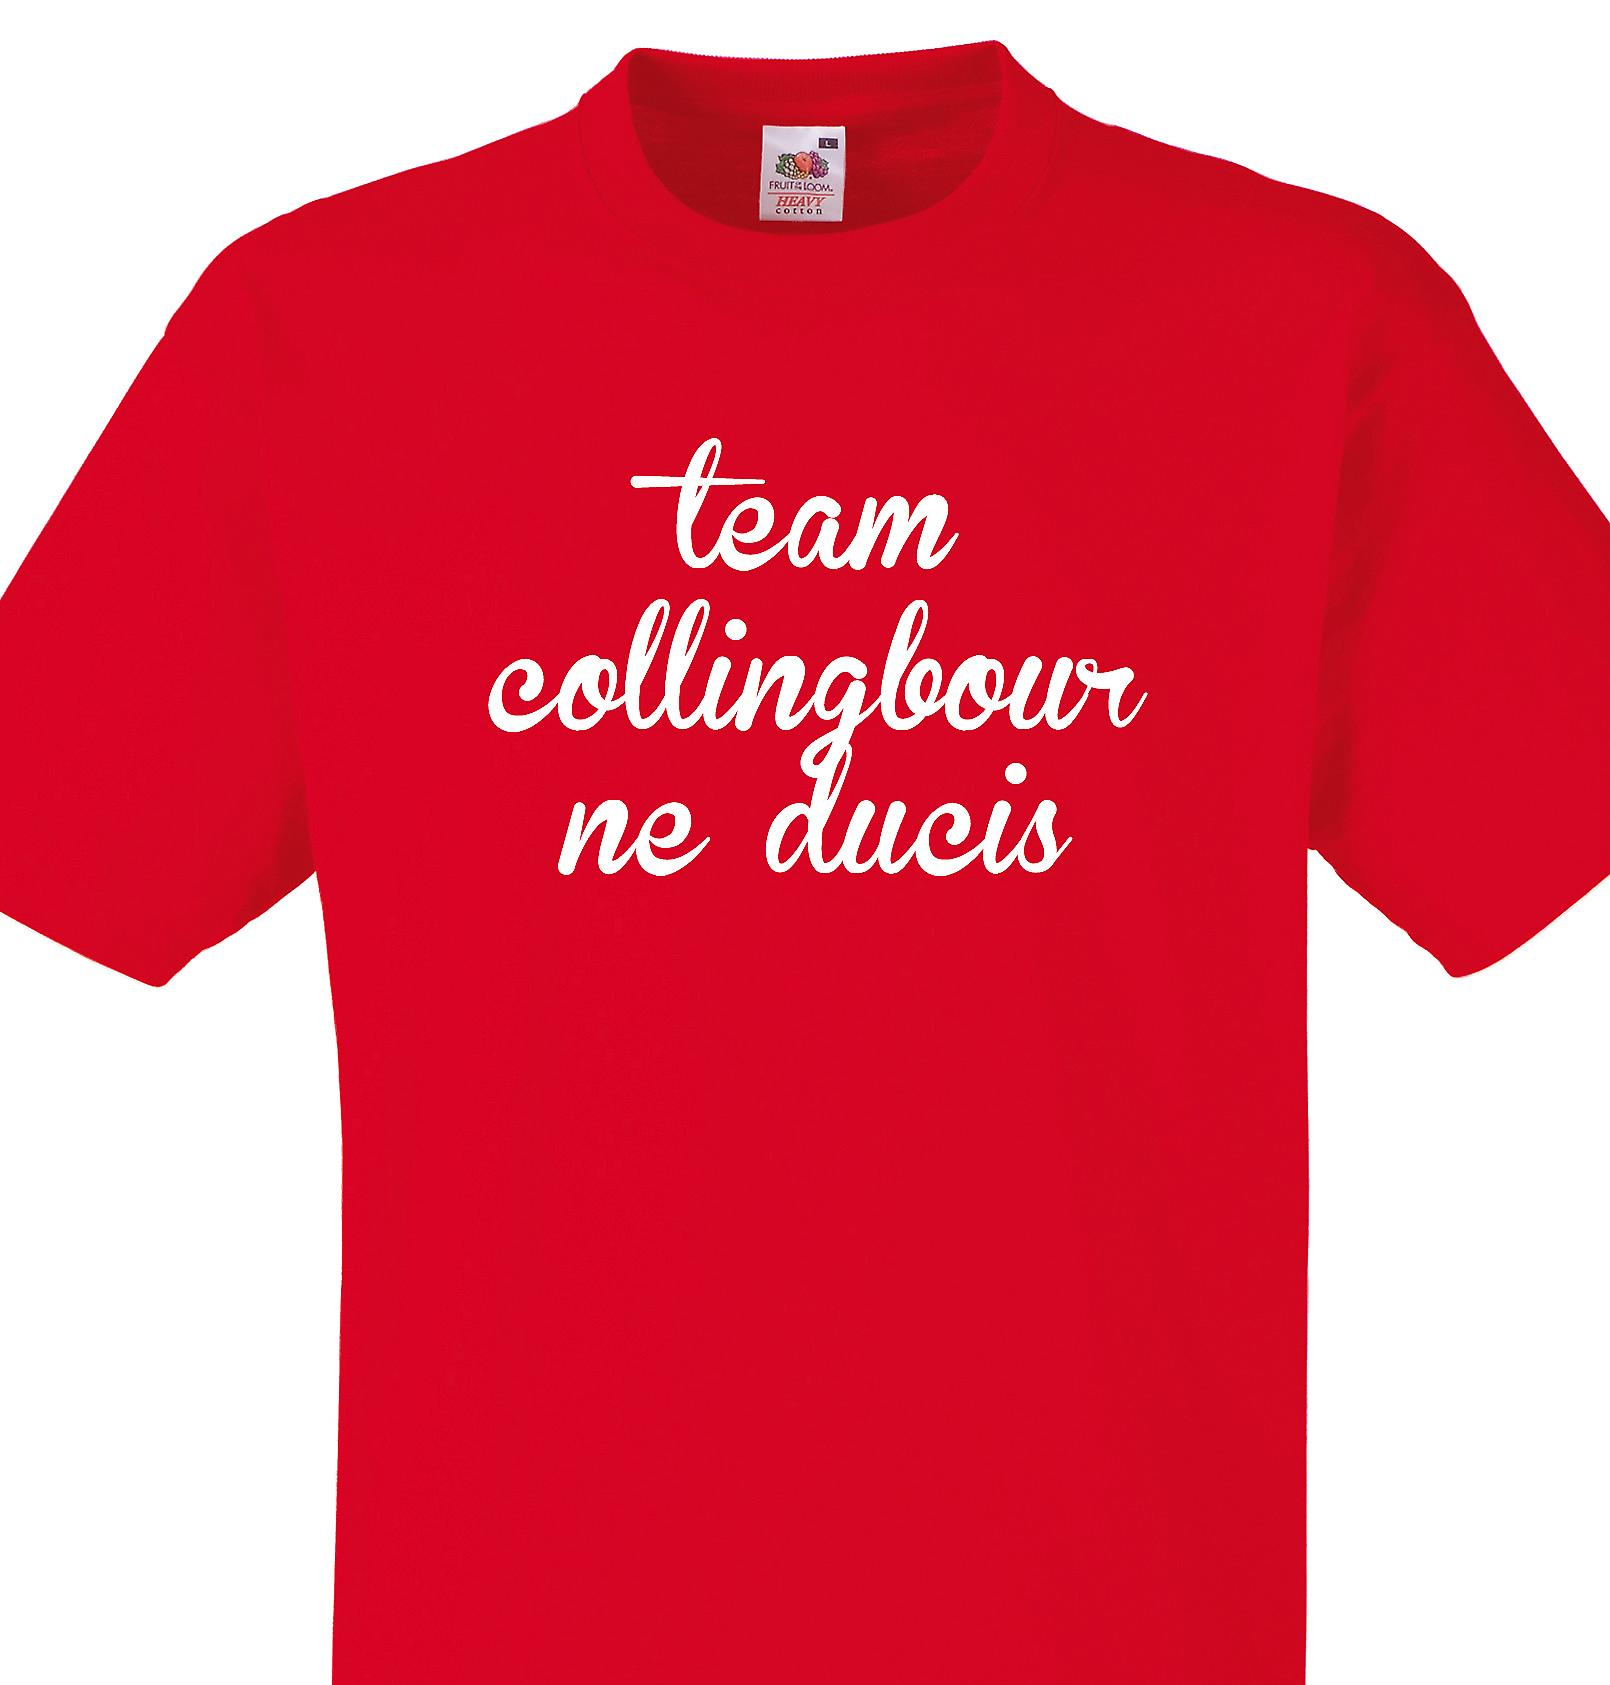 Team Collingbourne ducis Red T shirt